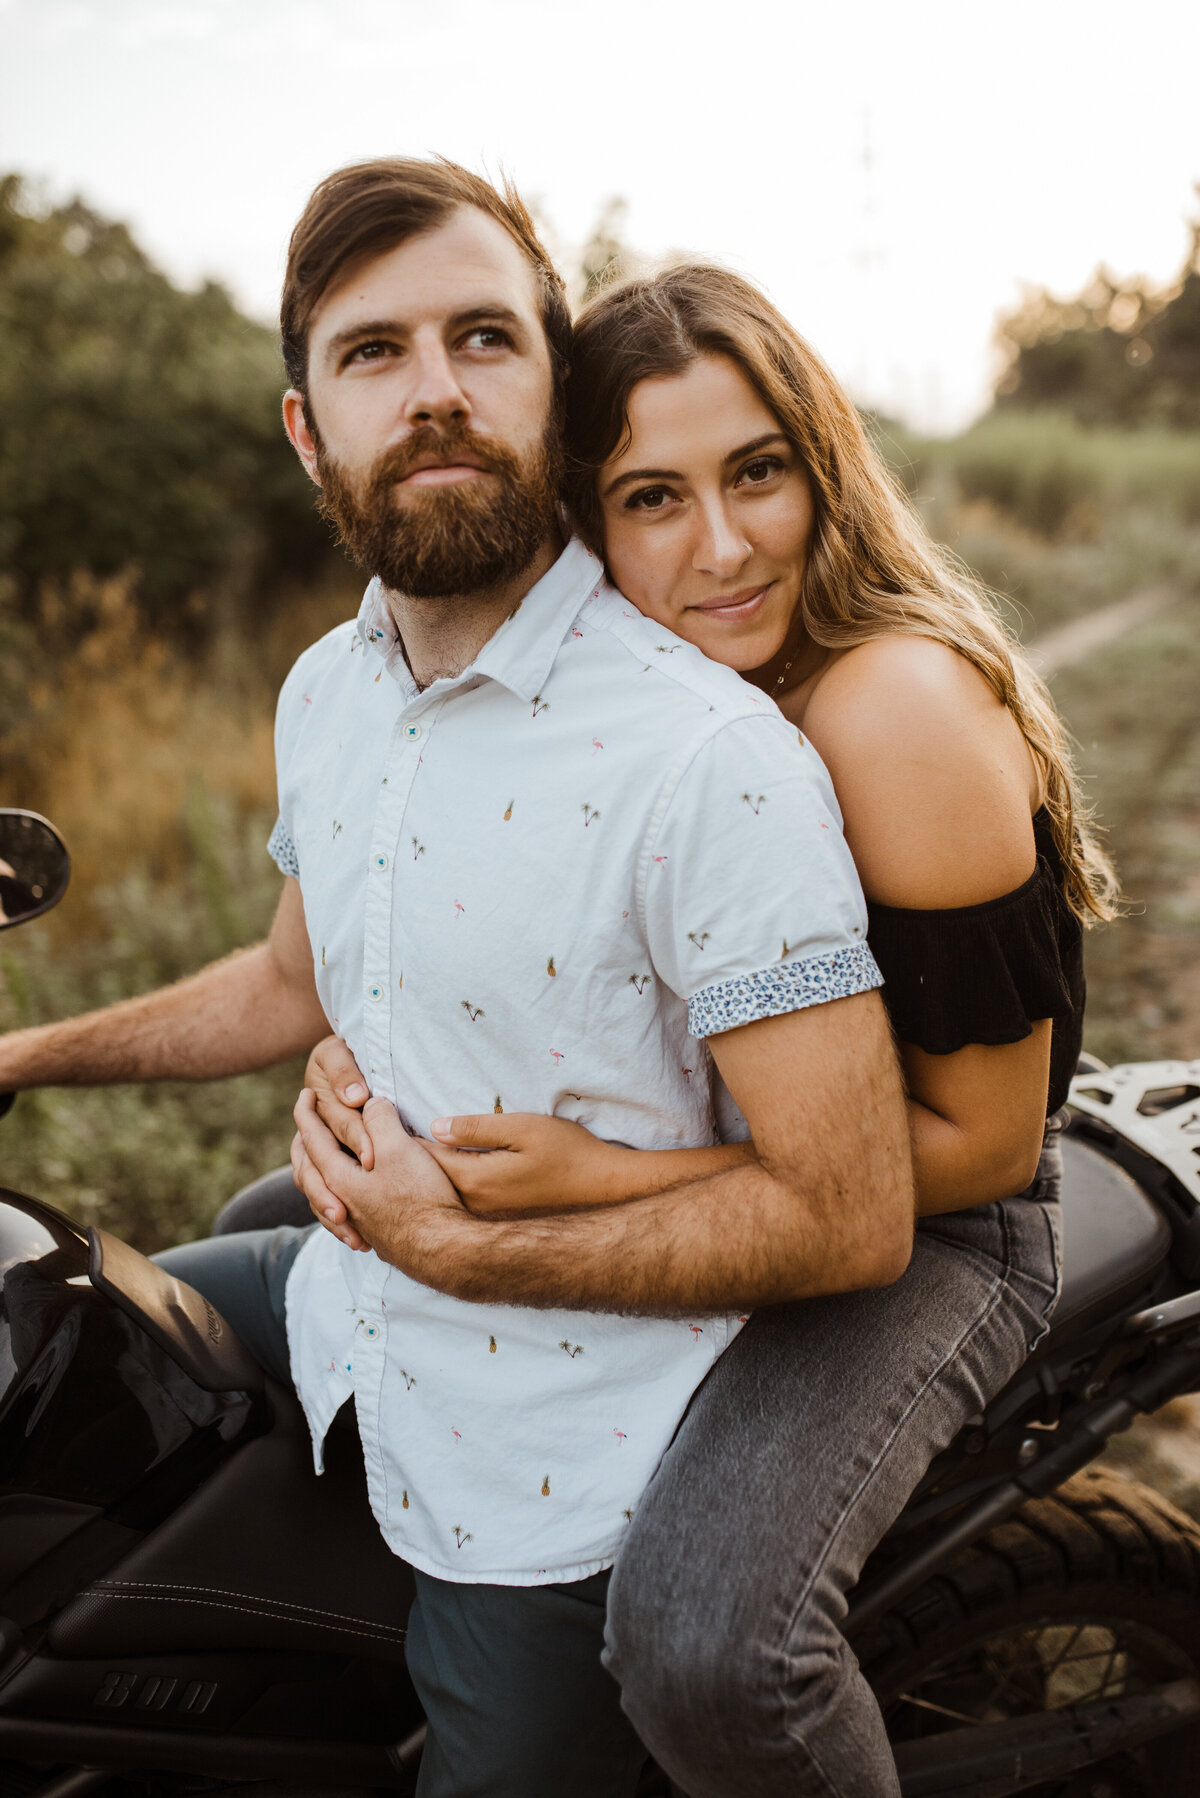 toronto-outdoor-fun-bohemian-motorcycle-engagement-couples-shoot-photography-06